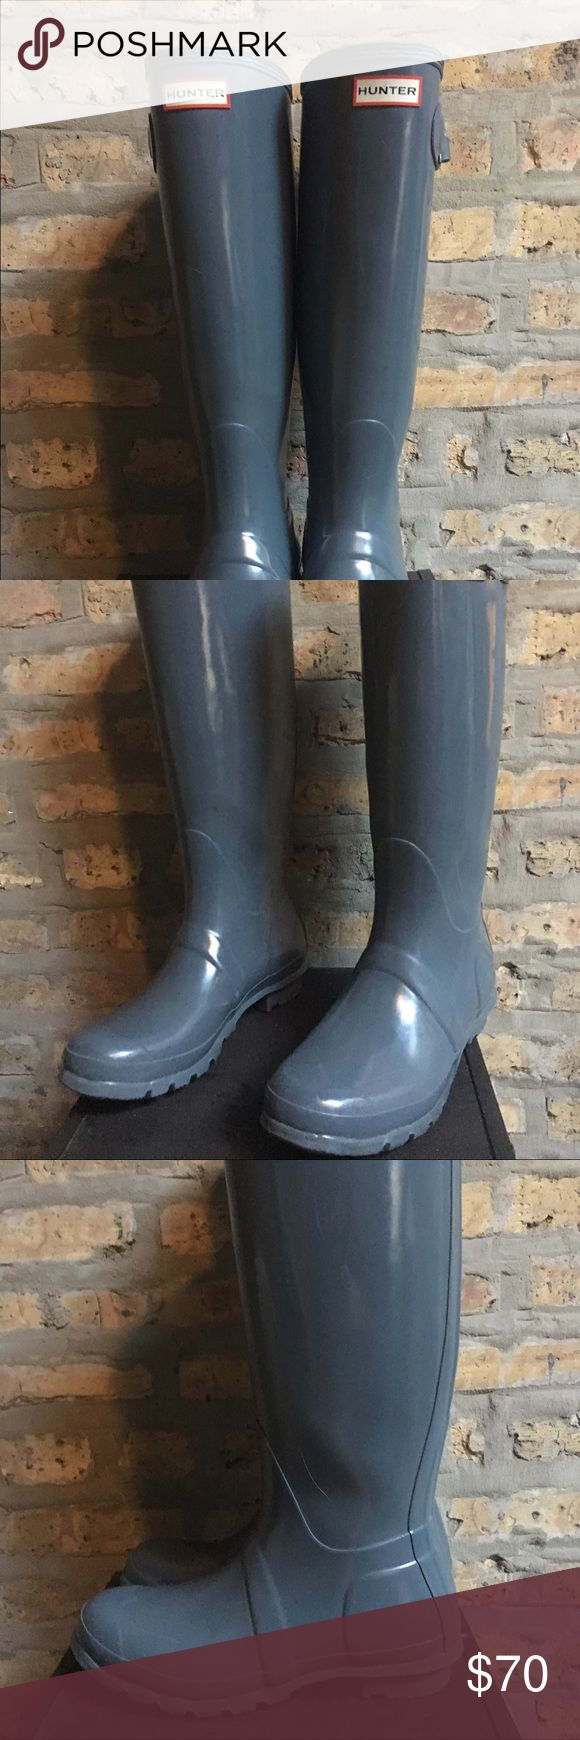 Women's Tall, Grey Hunter Boots They've treated me well but I have my eye on another pair already! Really good condition! Hunter Boots Shoes Winter & Rain Boots